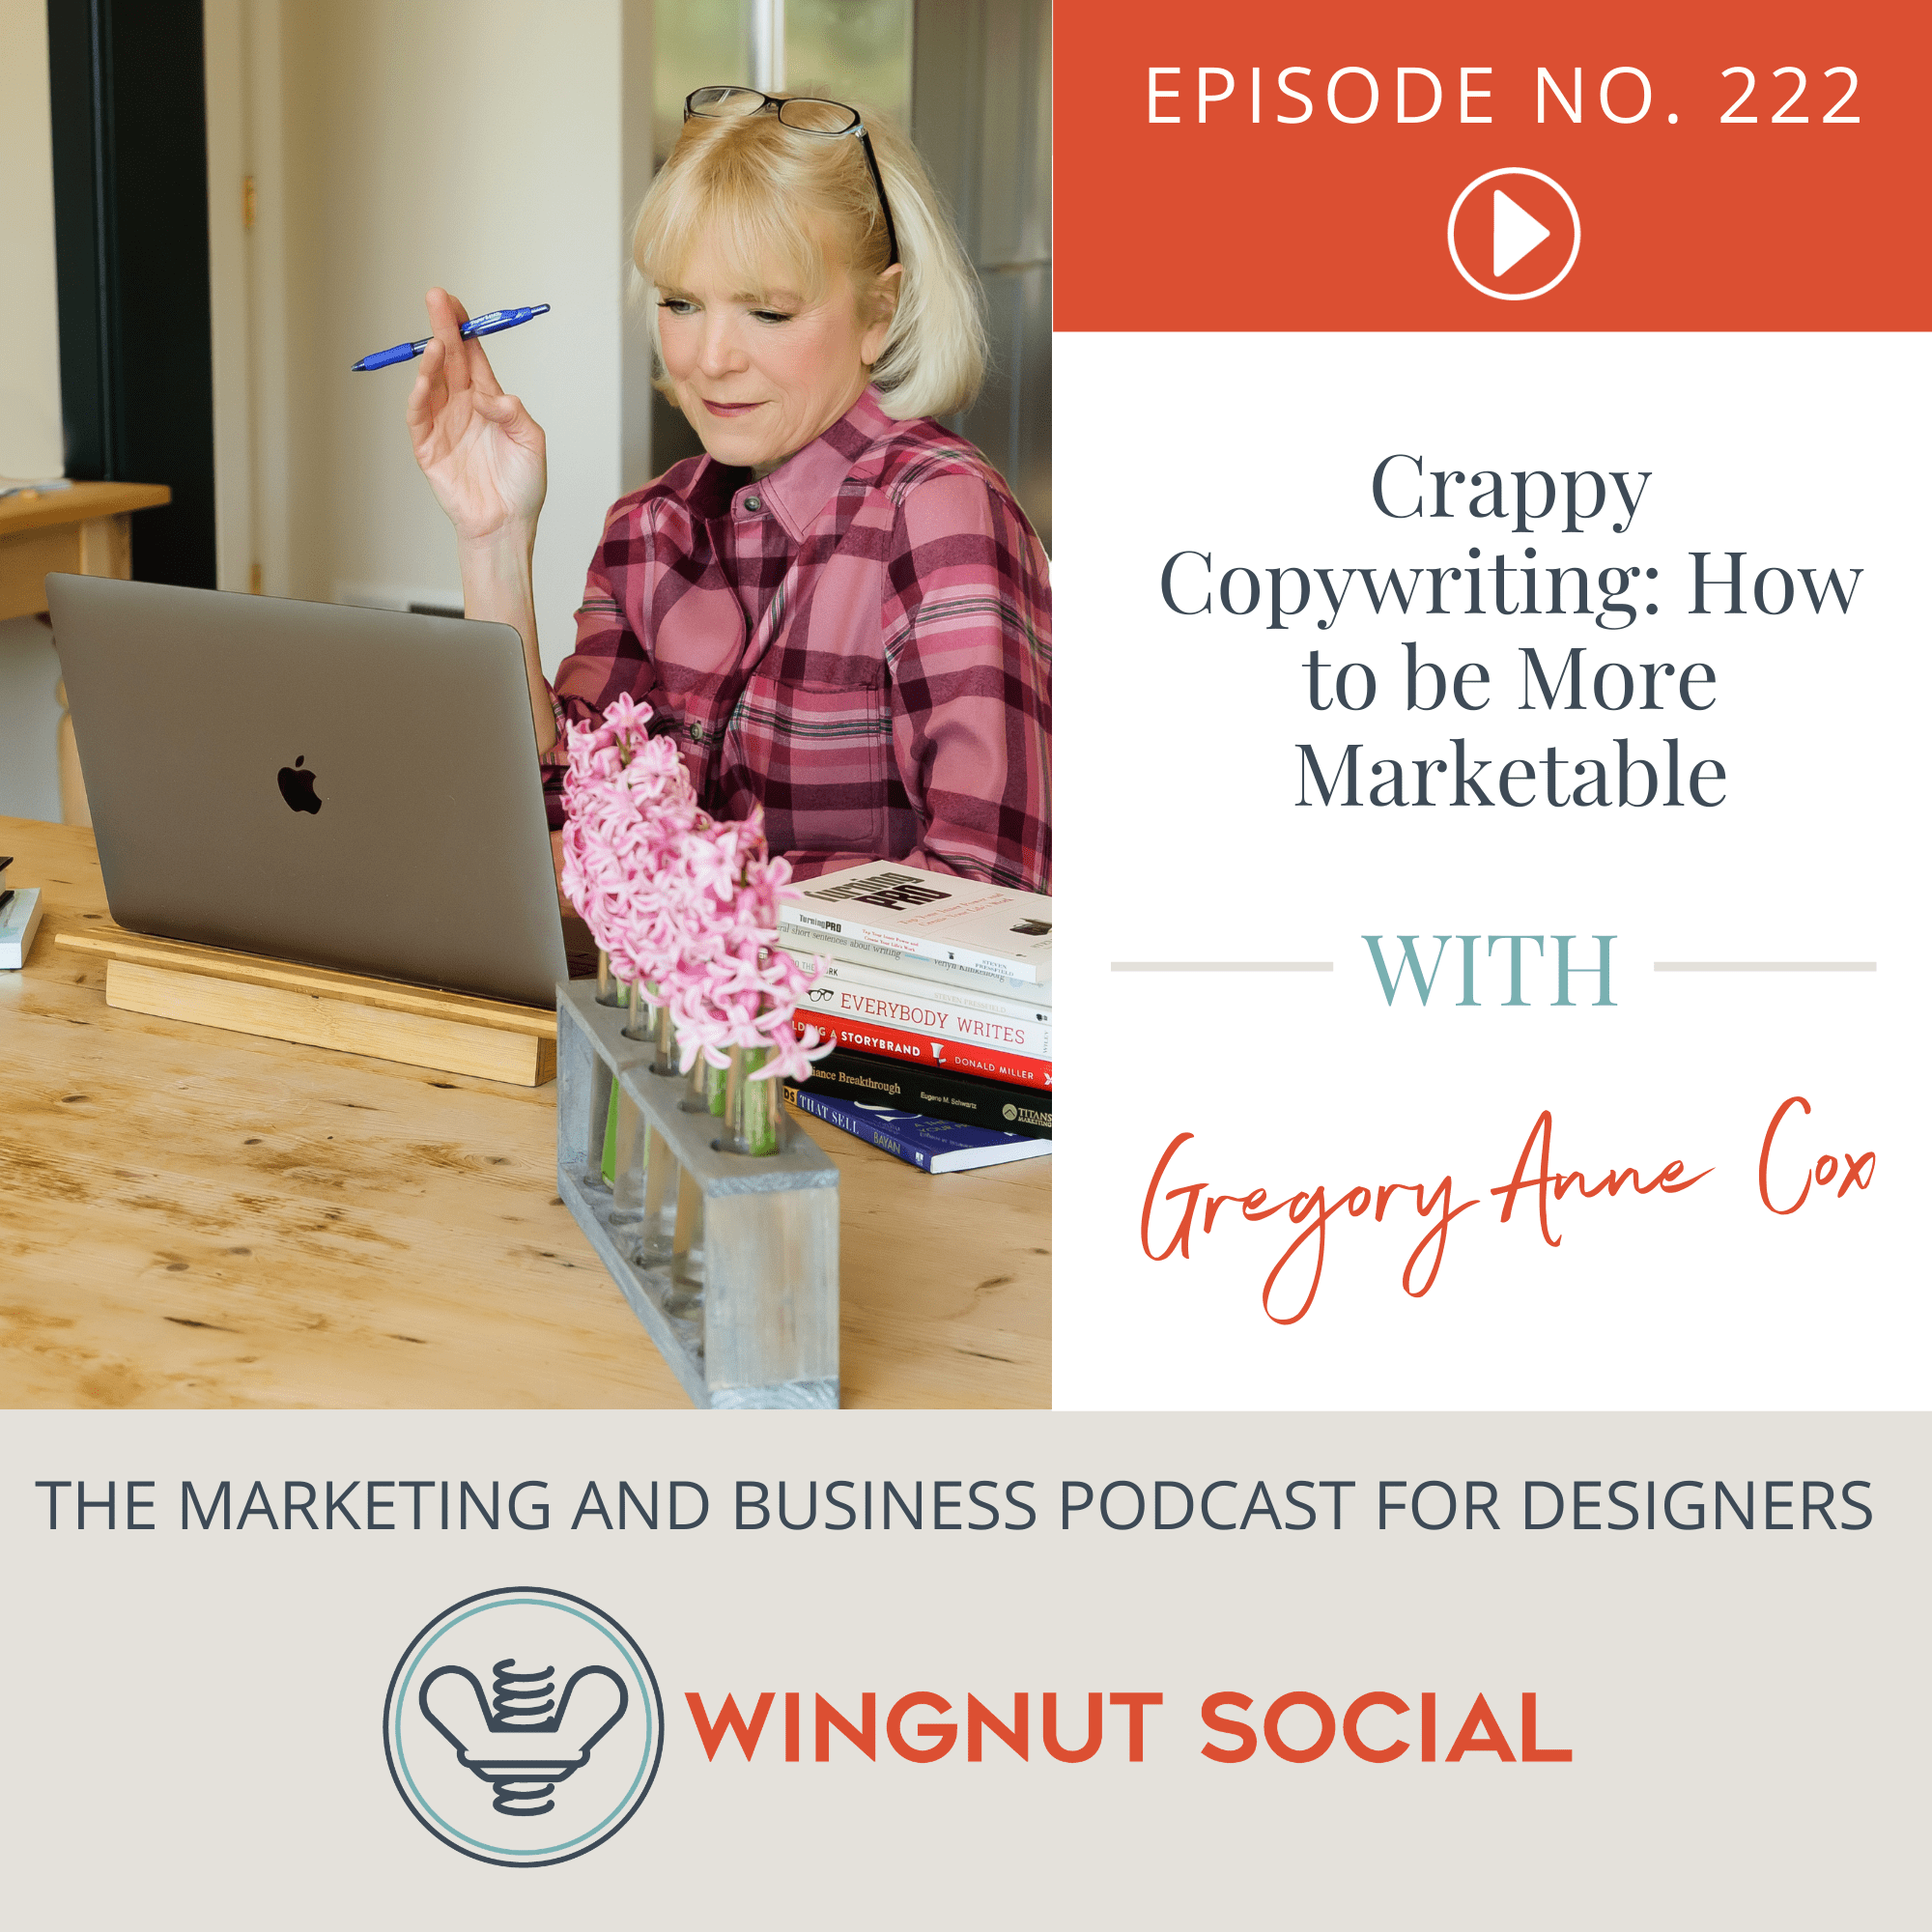 Crappy Copywriting: How to Be More Marketable with Gregory Anne Cox - Episode 222